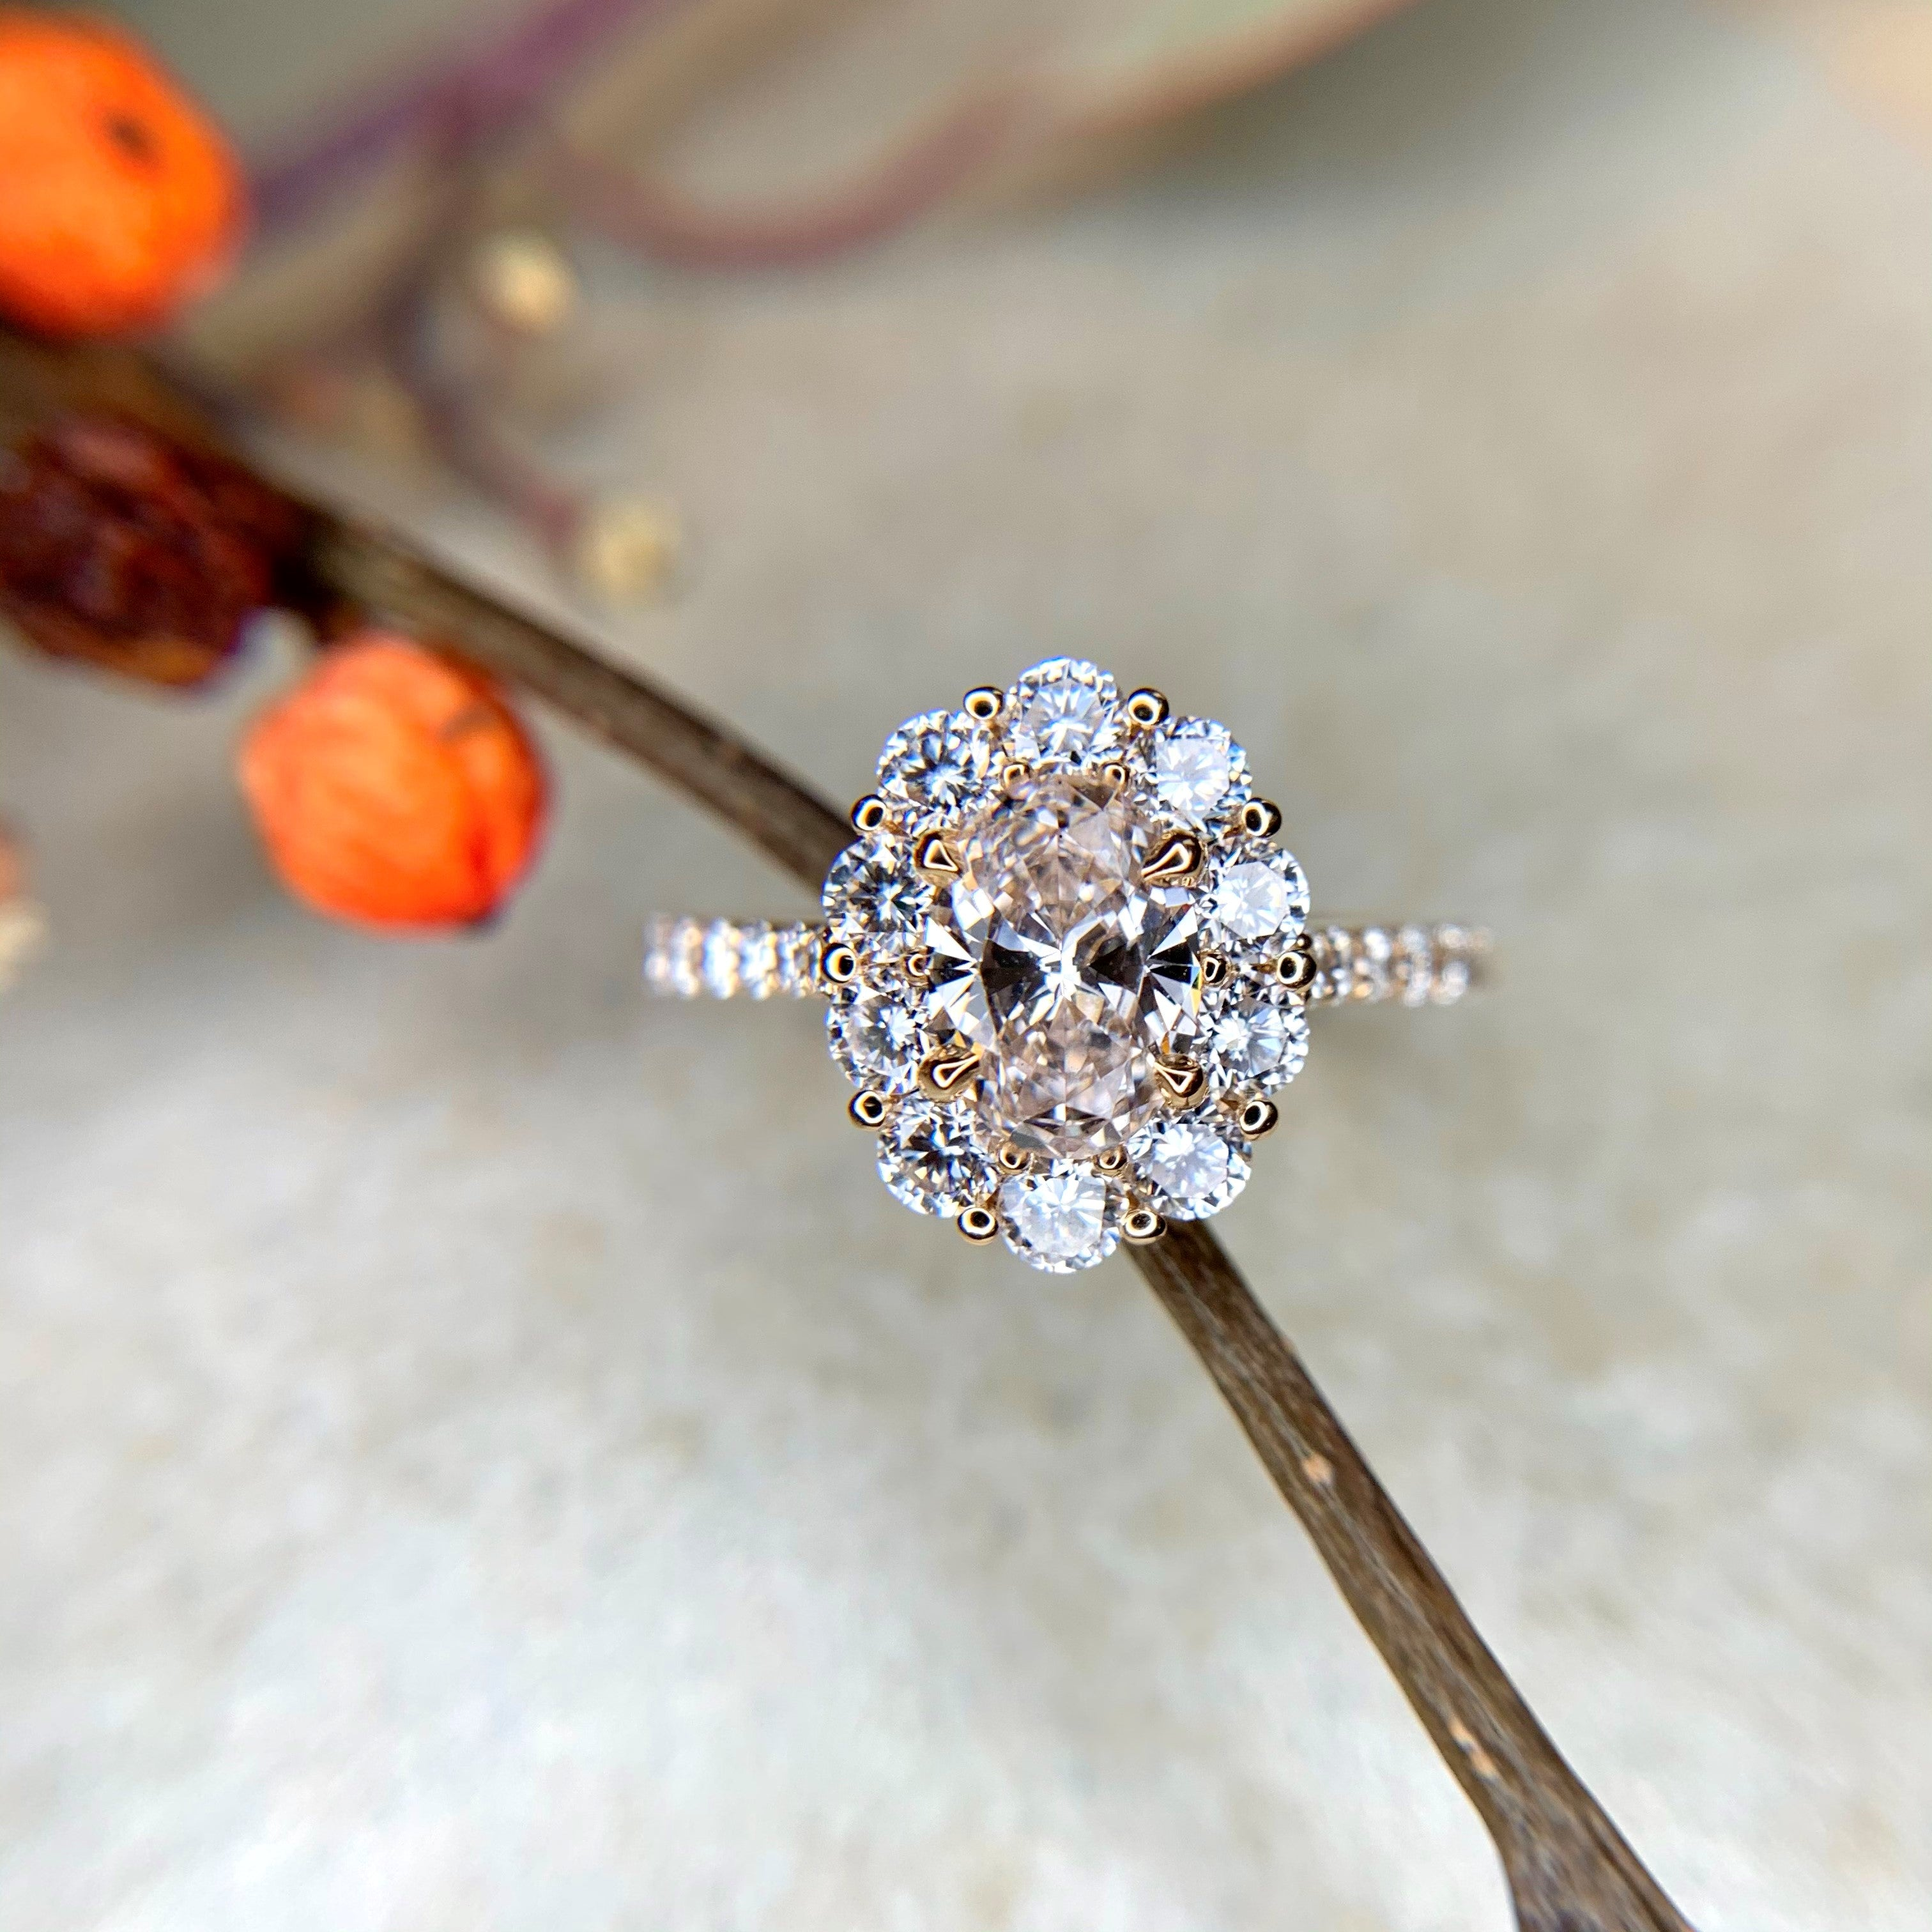 Malia lab diamond engagement ring- Dana Walden